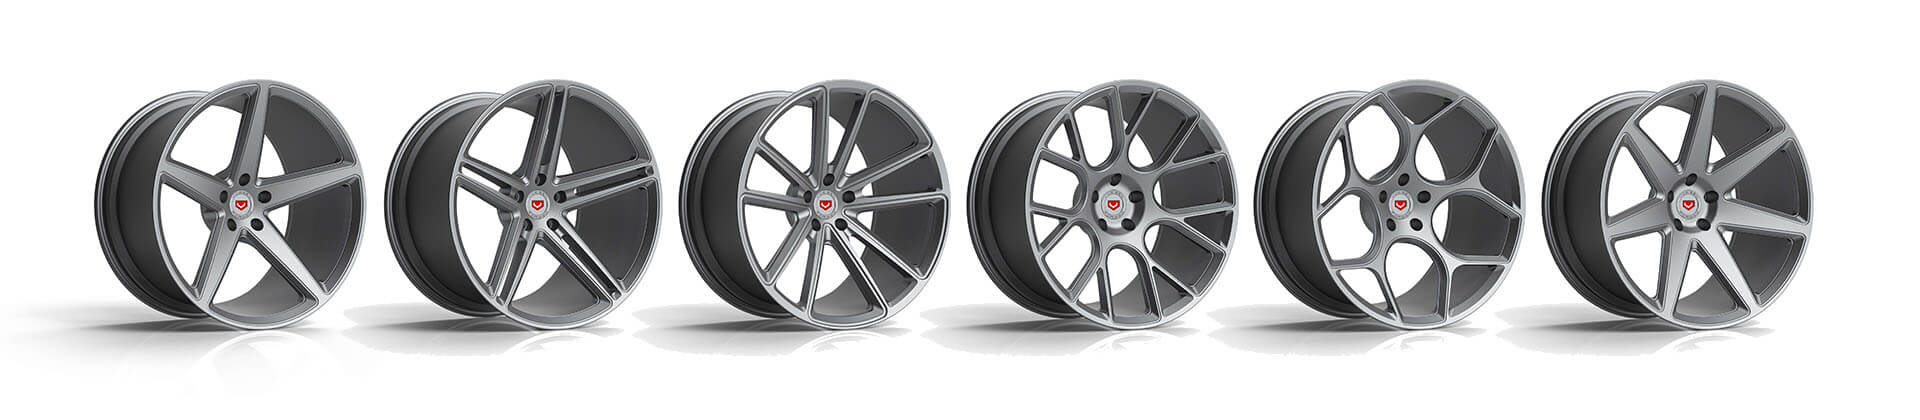 Vossen Wheels CG Series Lineup